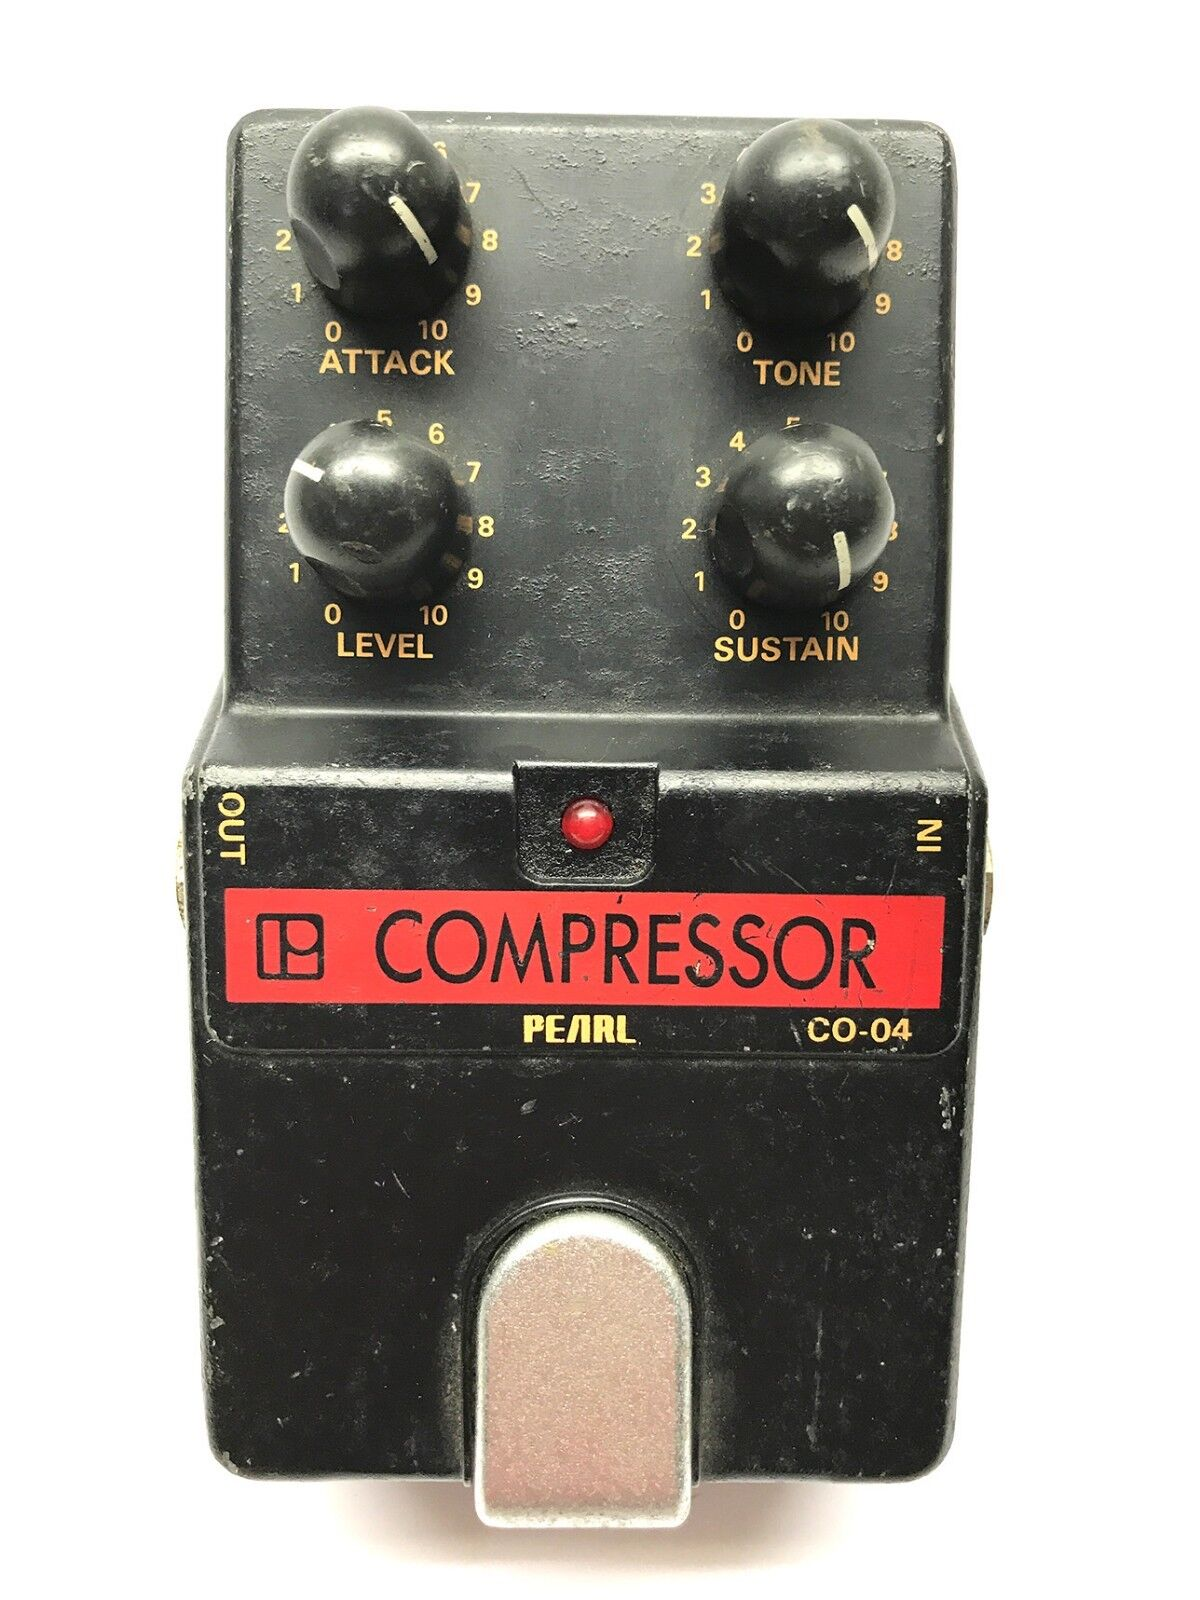 Pearl CO-04, Compressor, Made In Japan, 1980's, Vintage Guitar Effect Pedal